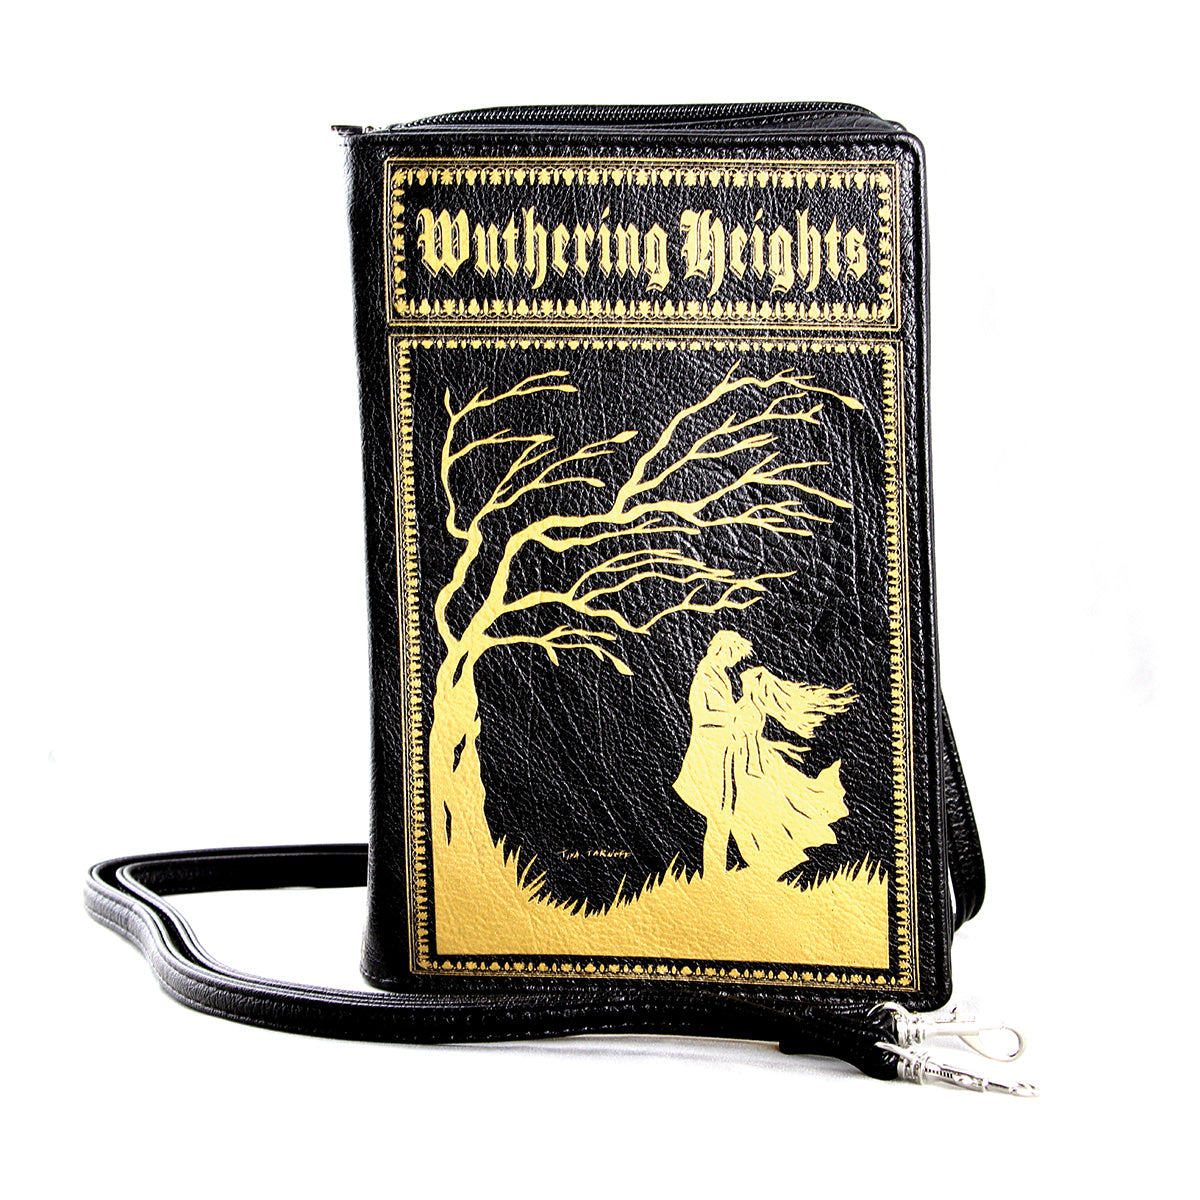 Wuthering Heights Vintage Book Clutch Bag in Vinyl, front view